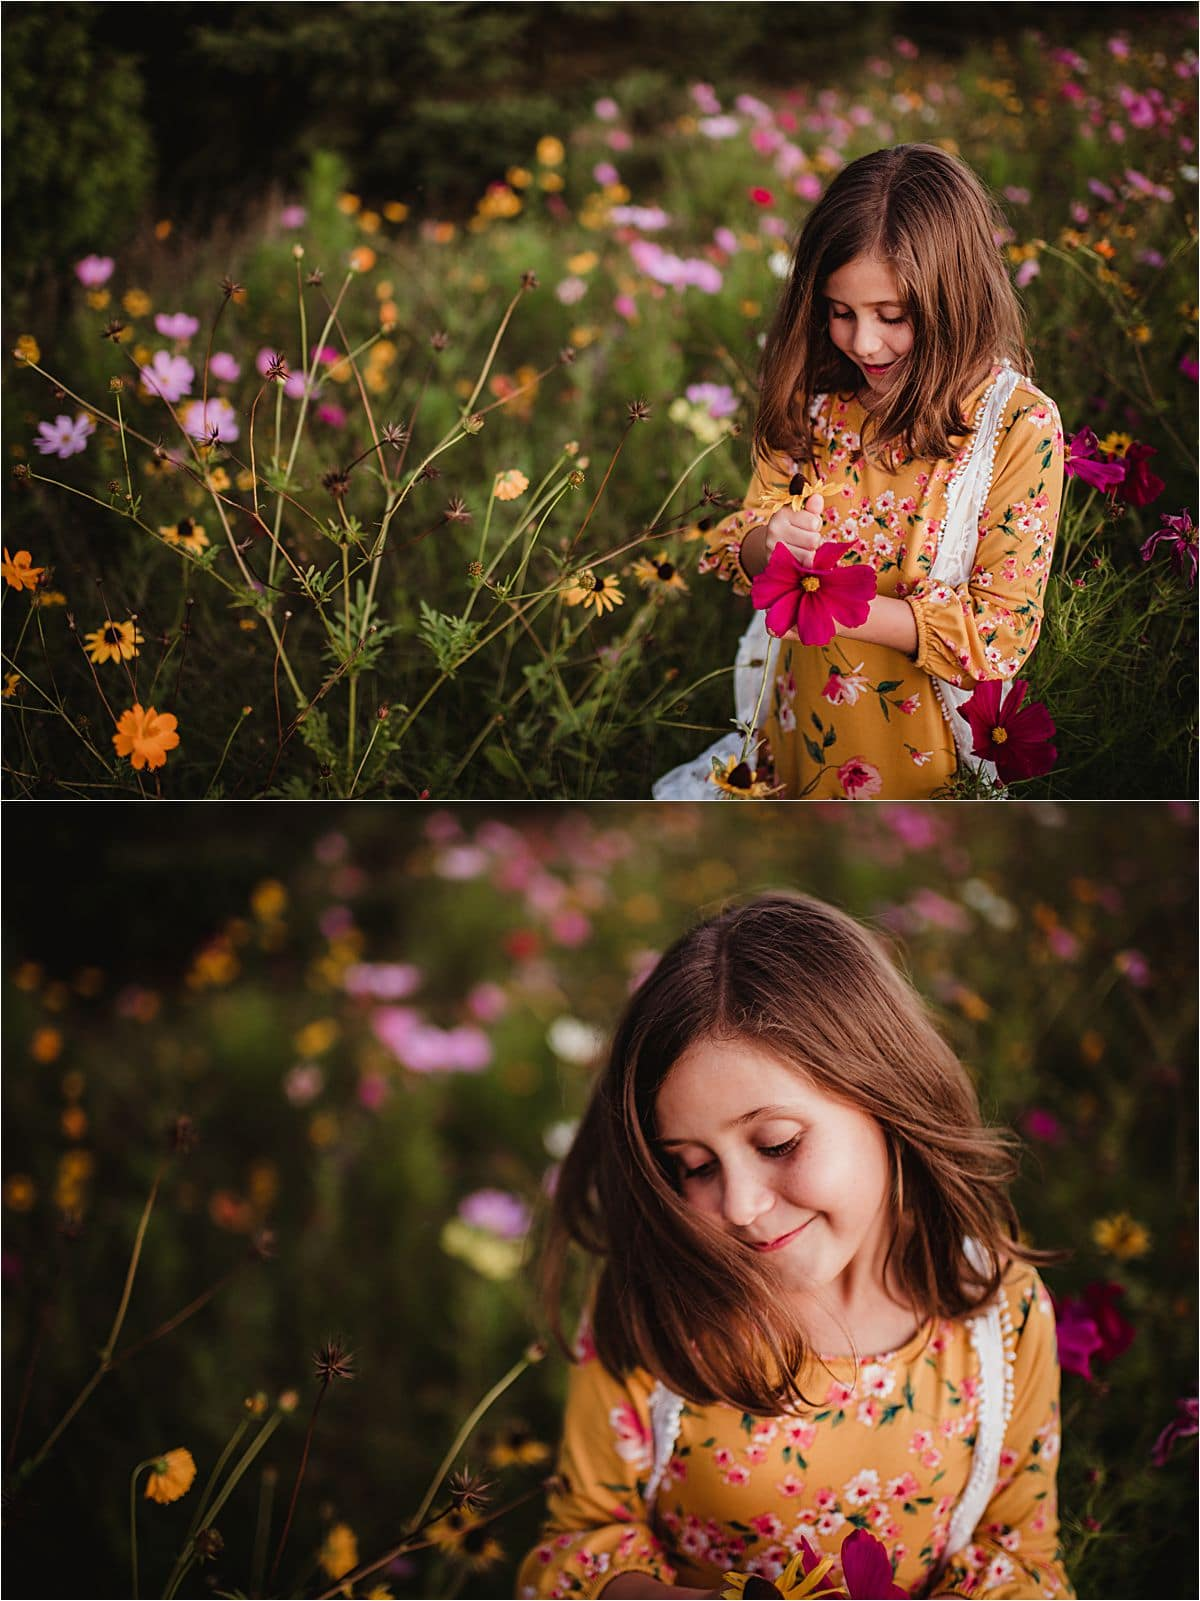 Summer Sunflower Session Girl in Wildflowers